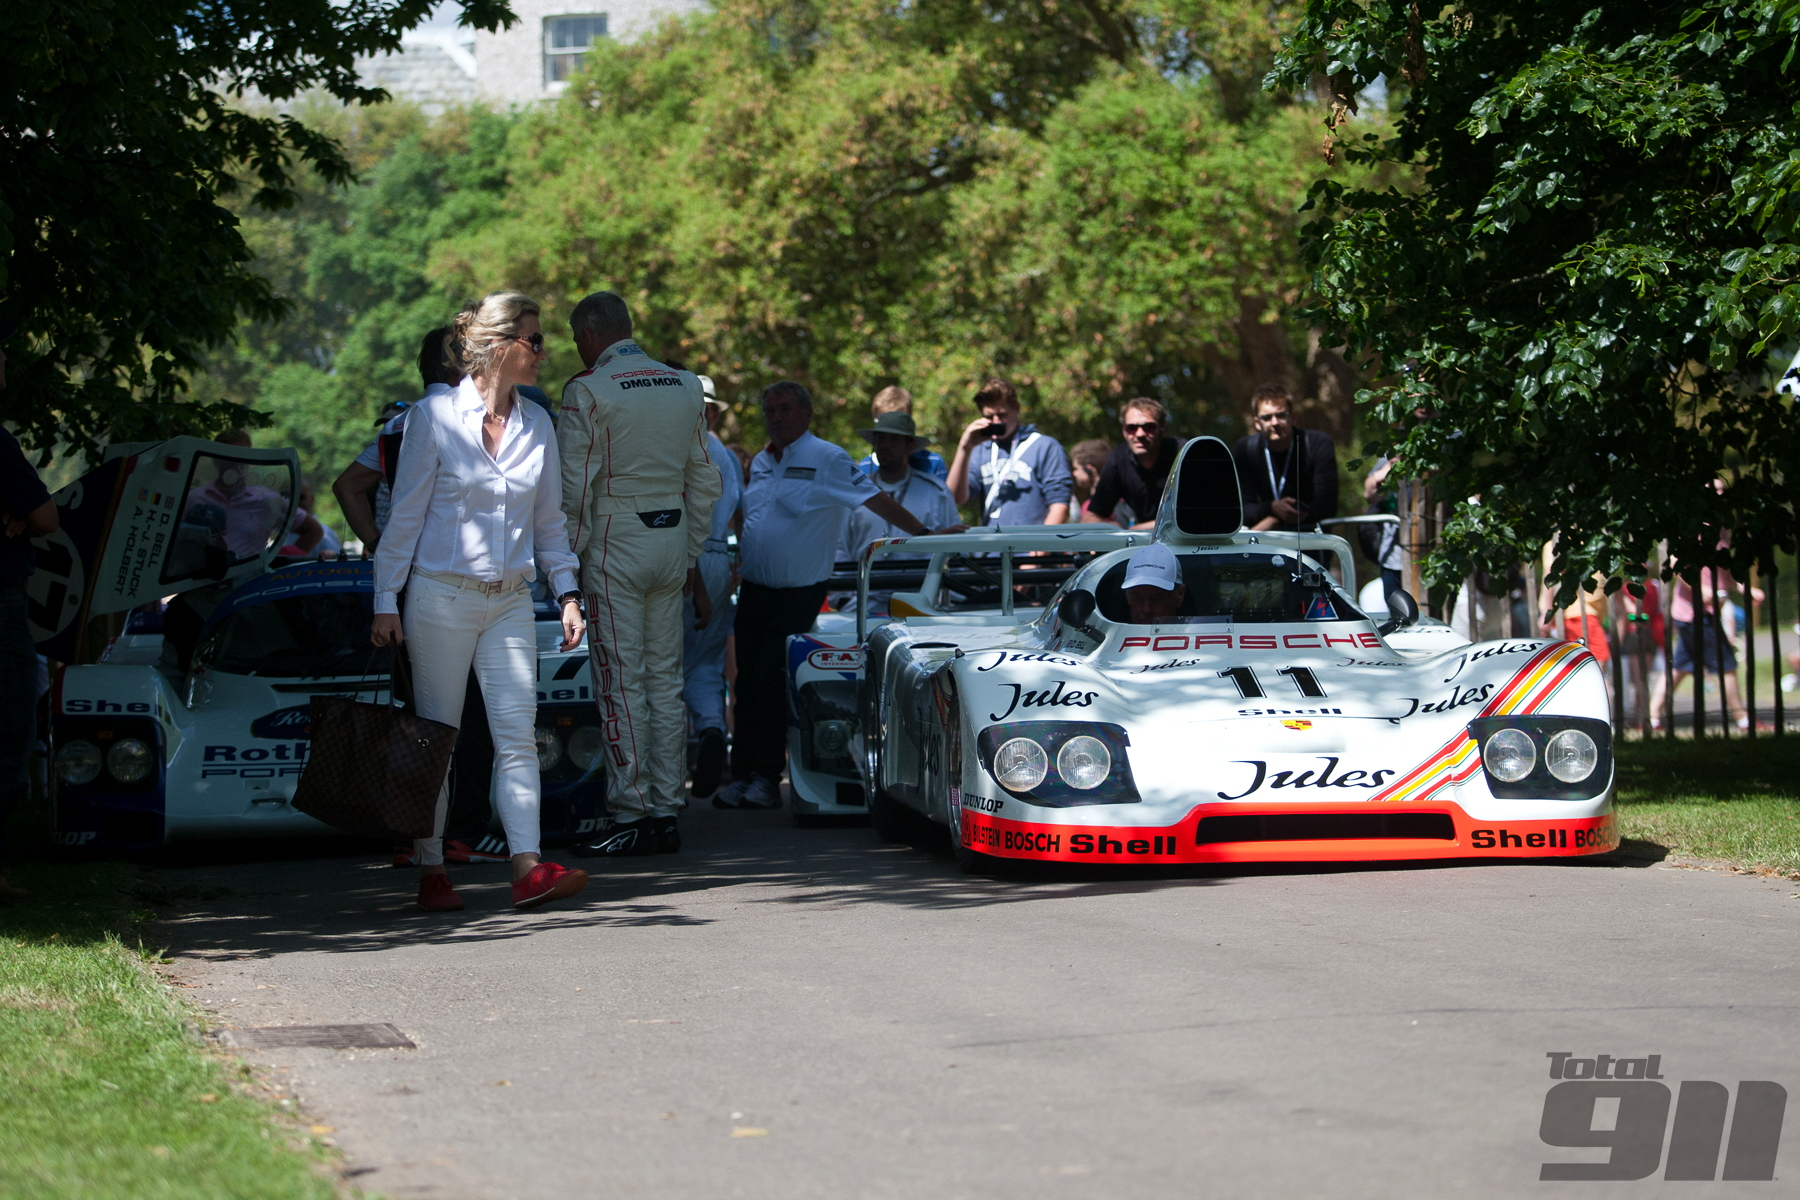 A seldom seen sight outside the Porsche Museum, the 1981 Porsche 936 that won that year's 24 Hours of Le Mans.